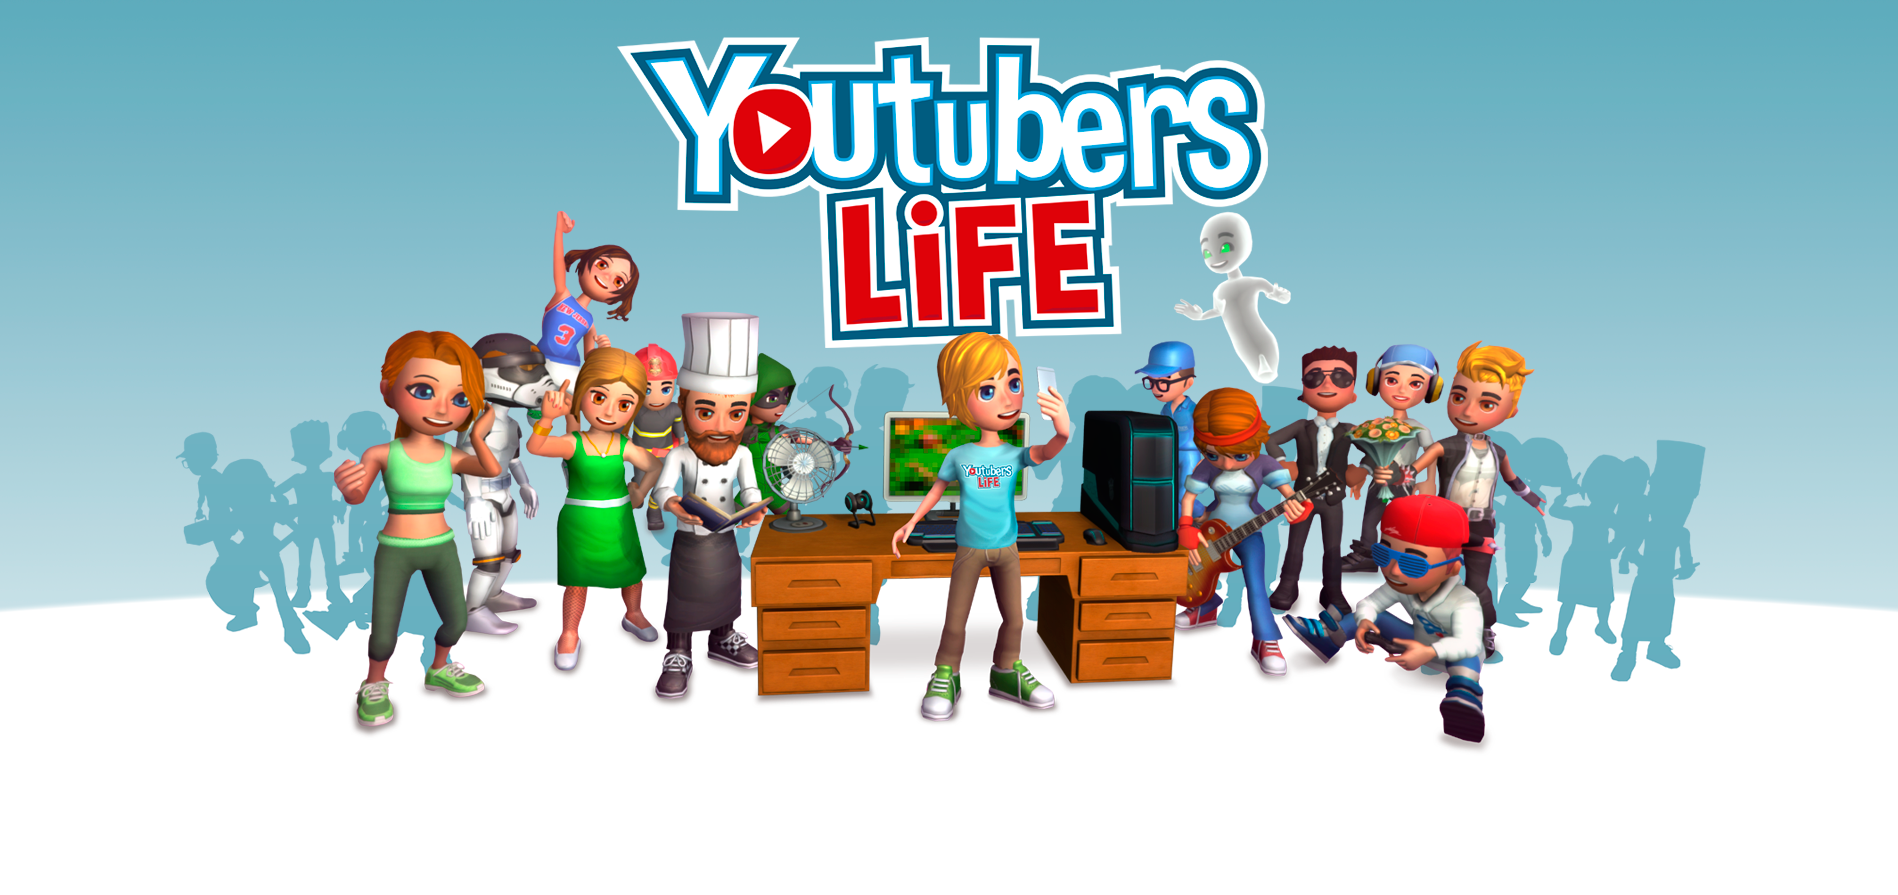 YouTubers Play A Game About Being YouTubers, Because YouTube bg home new